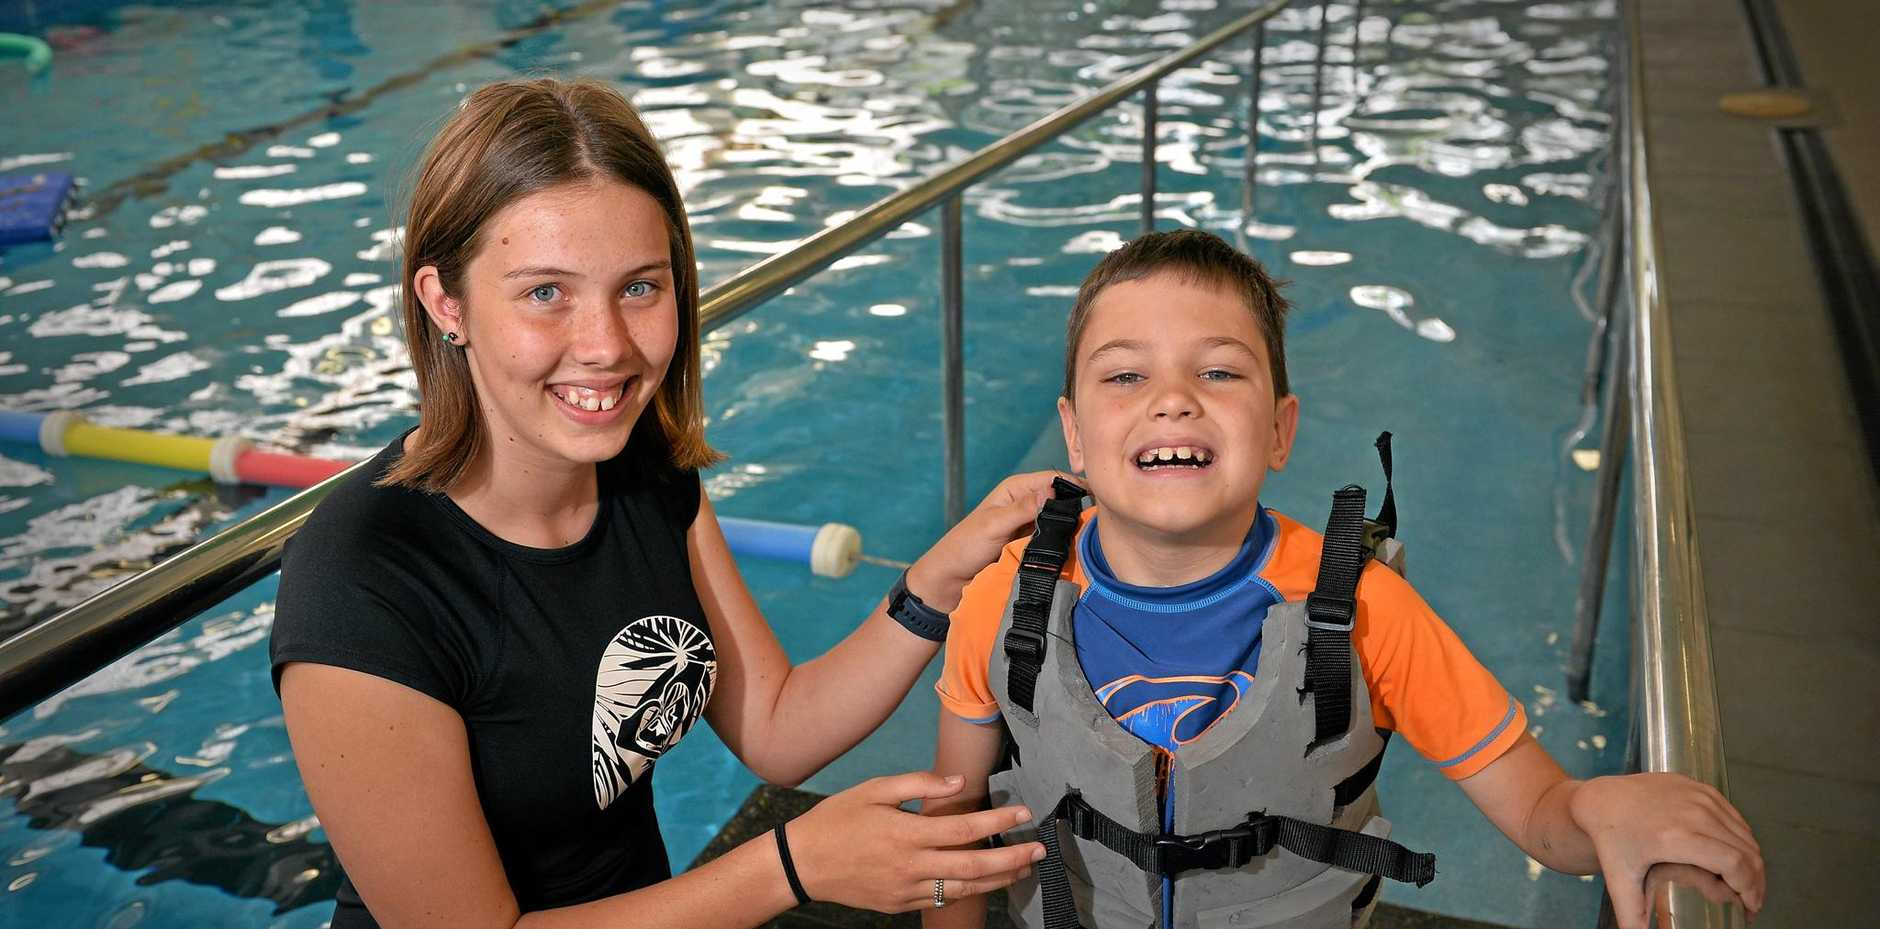 MAKING A SPLASH: Bella Blunt has designed a floatation device to help eight year old Kilani who has limited mobility in his legs.